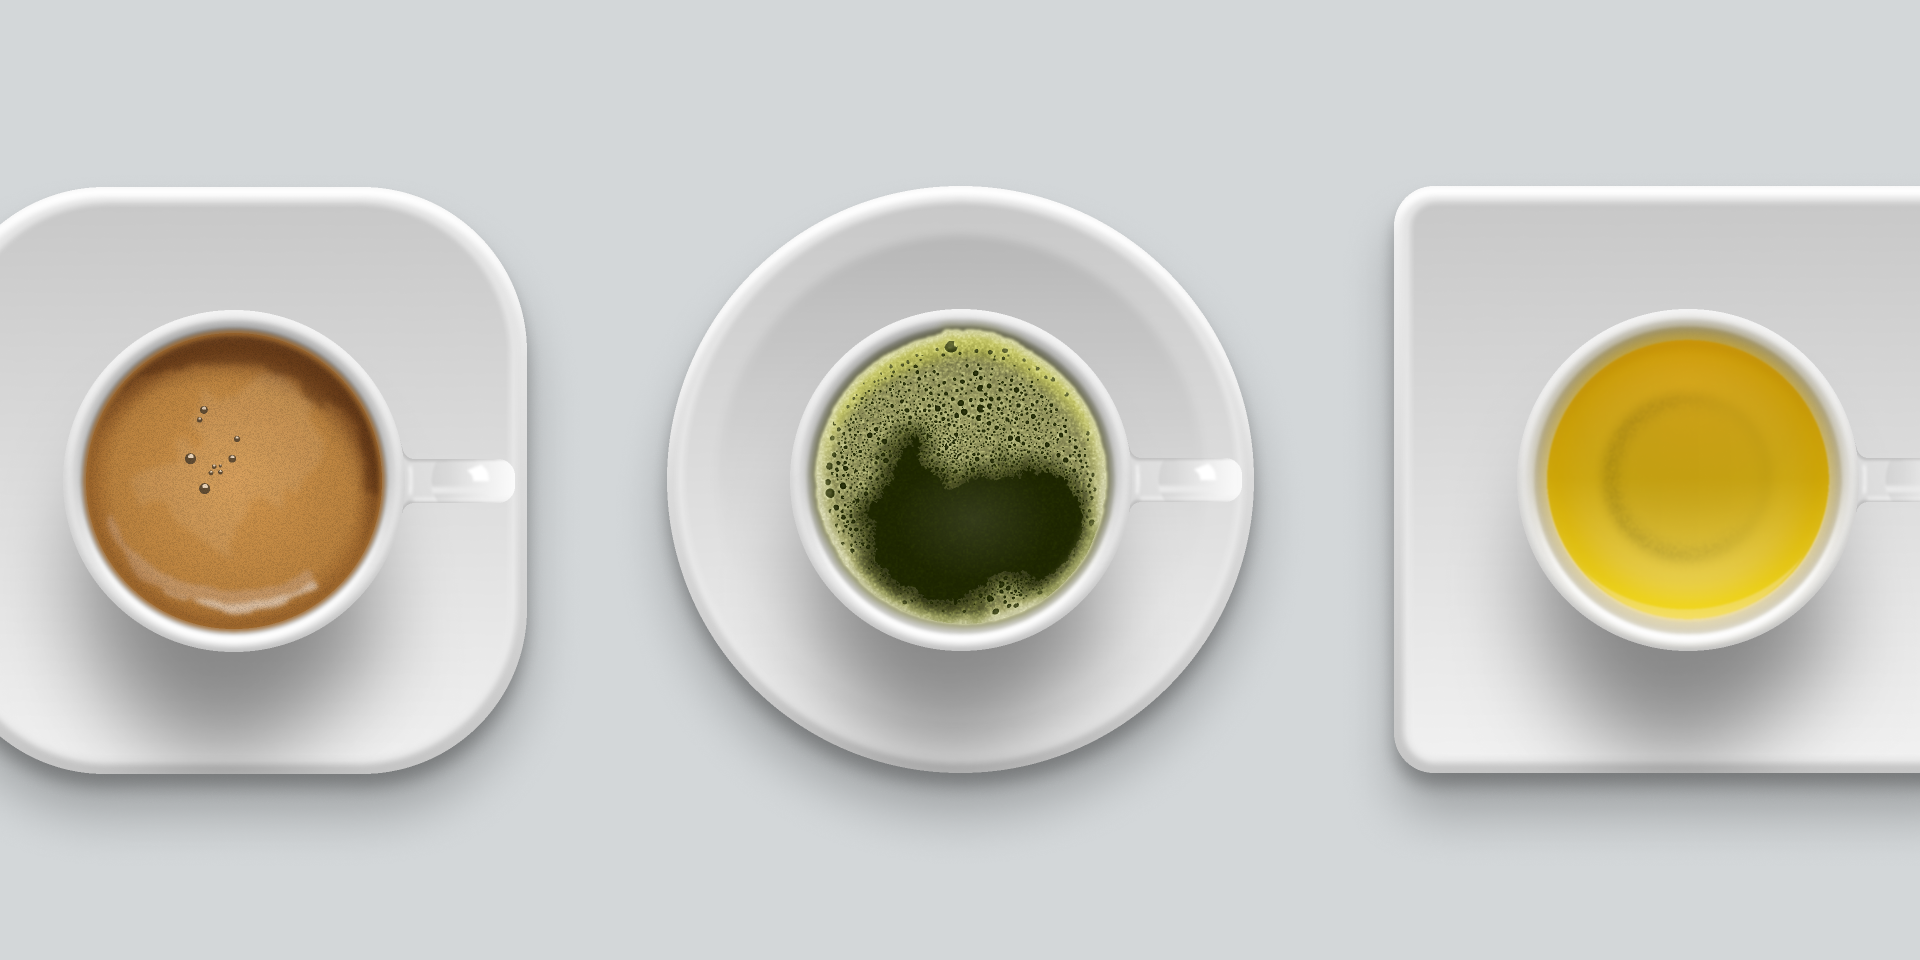 Cup Icon figma free